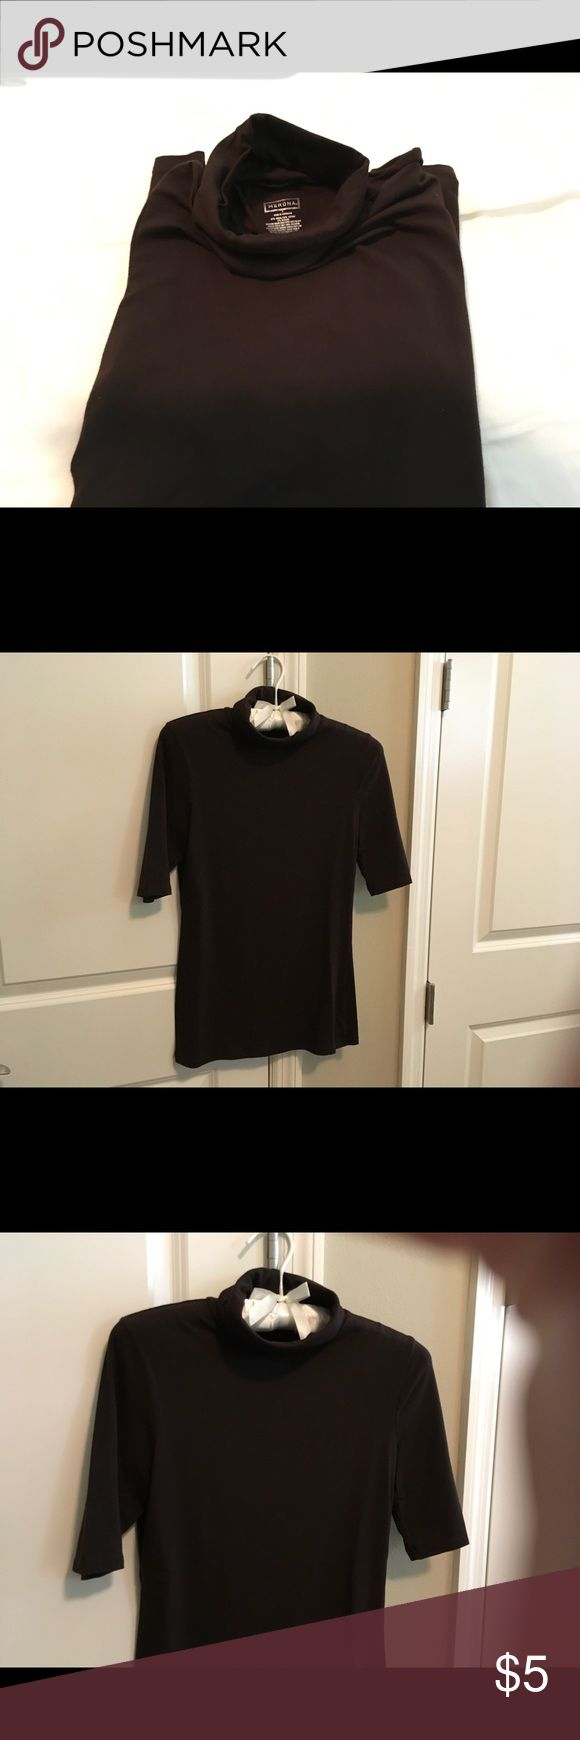 Merona Short Sleeve Top Merona brown short sleeve turtleneck cotton spandex size S nice and soft EUC don't forget to bundle. Other colors available😎 Merona Tops